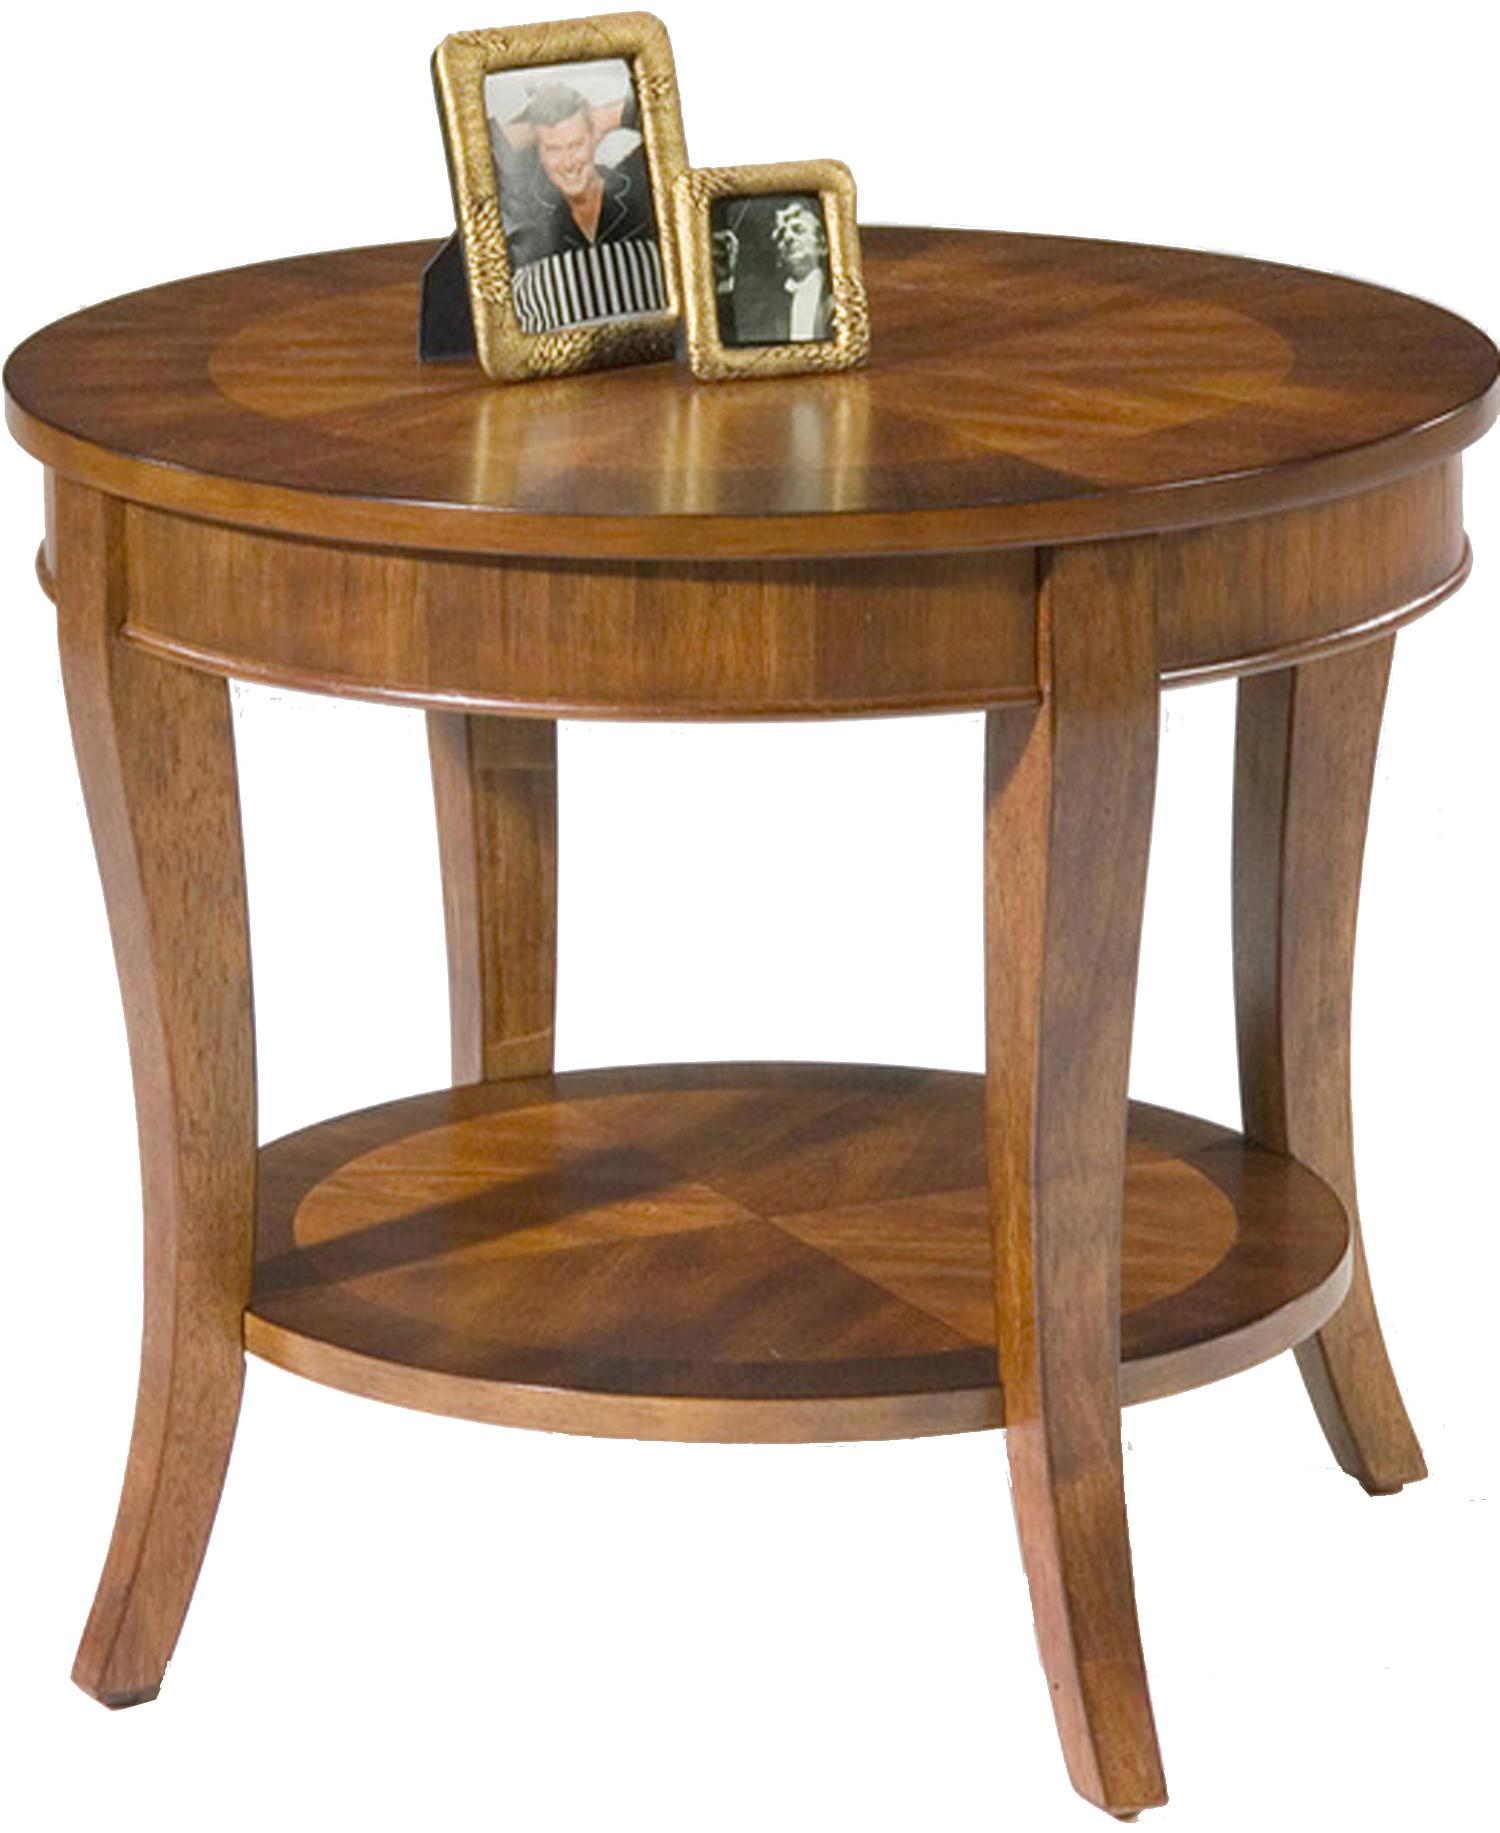 liberty furniture bradshaw round end table with shelf products color cherry mirror tables drawers small painted coffee farm style expensive dining dark wood black glass top set